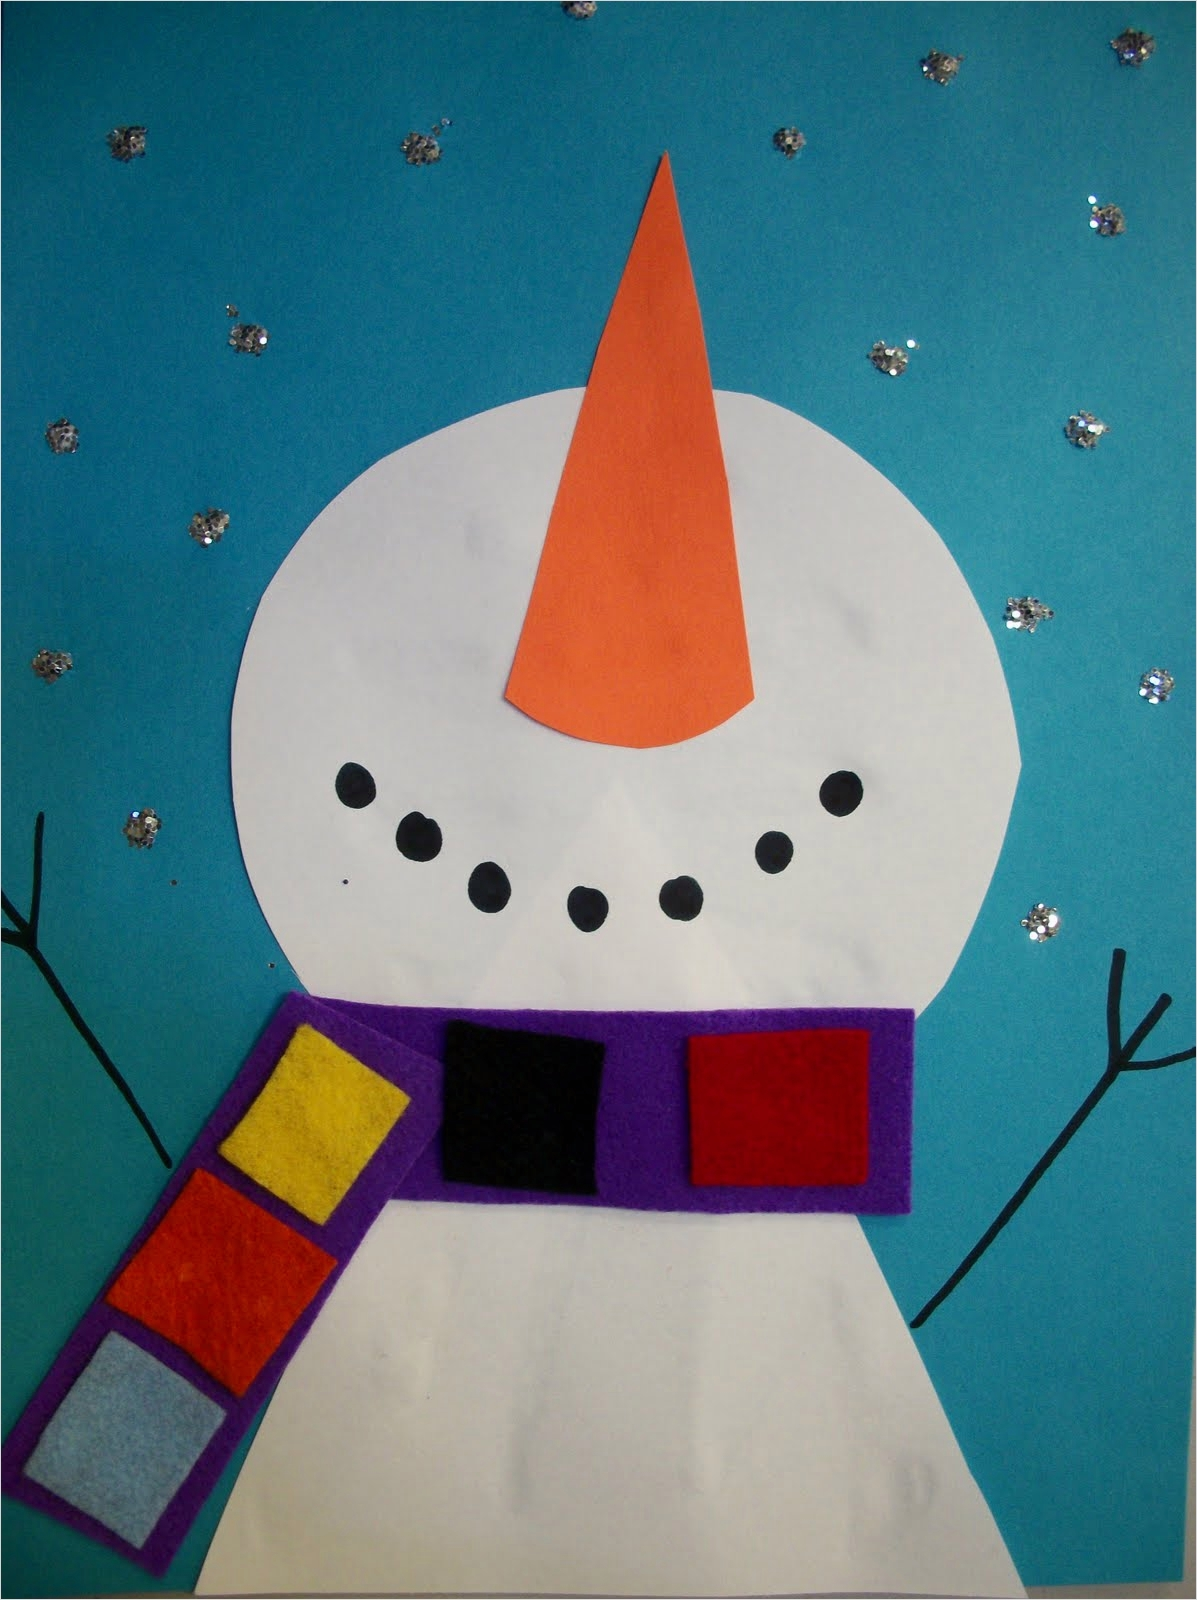 40 Diy Easy Winter Crafts 52 We Heart Art are You Up for Winter 7